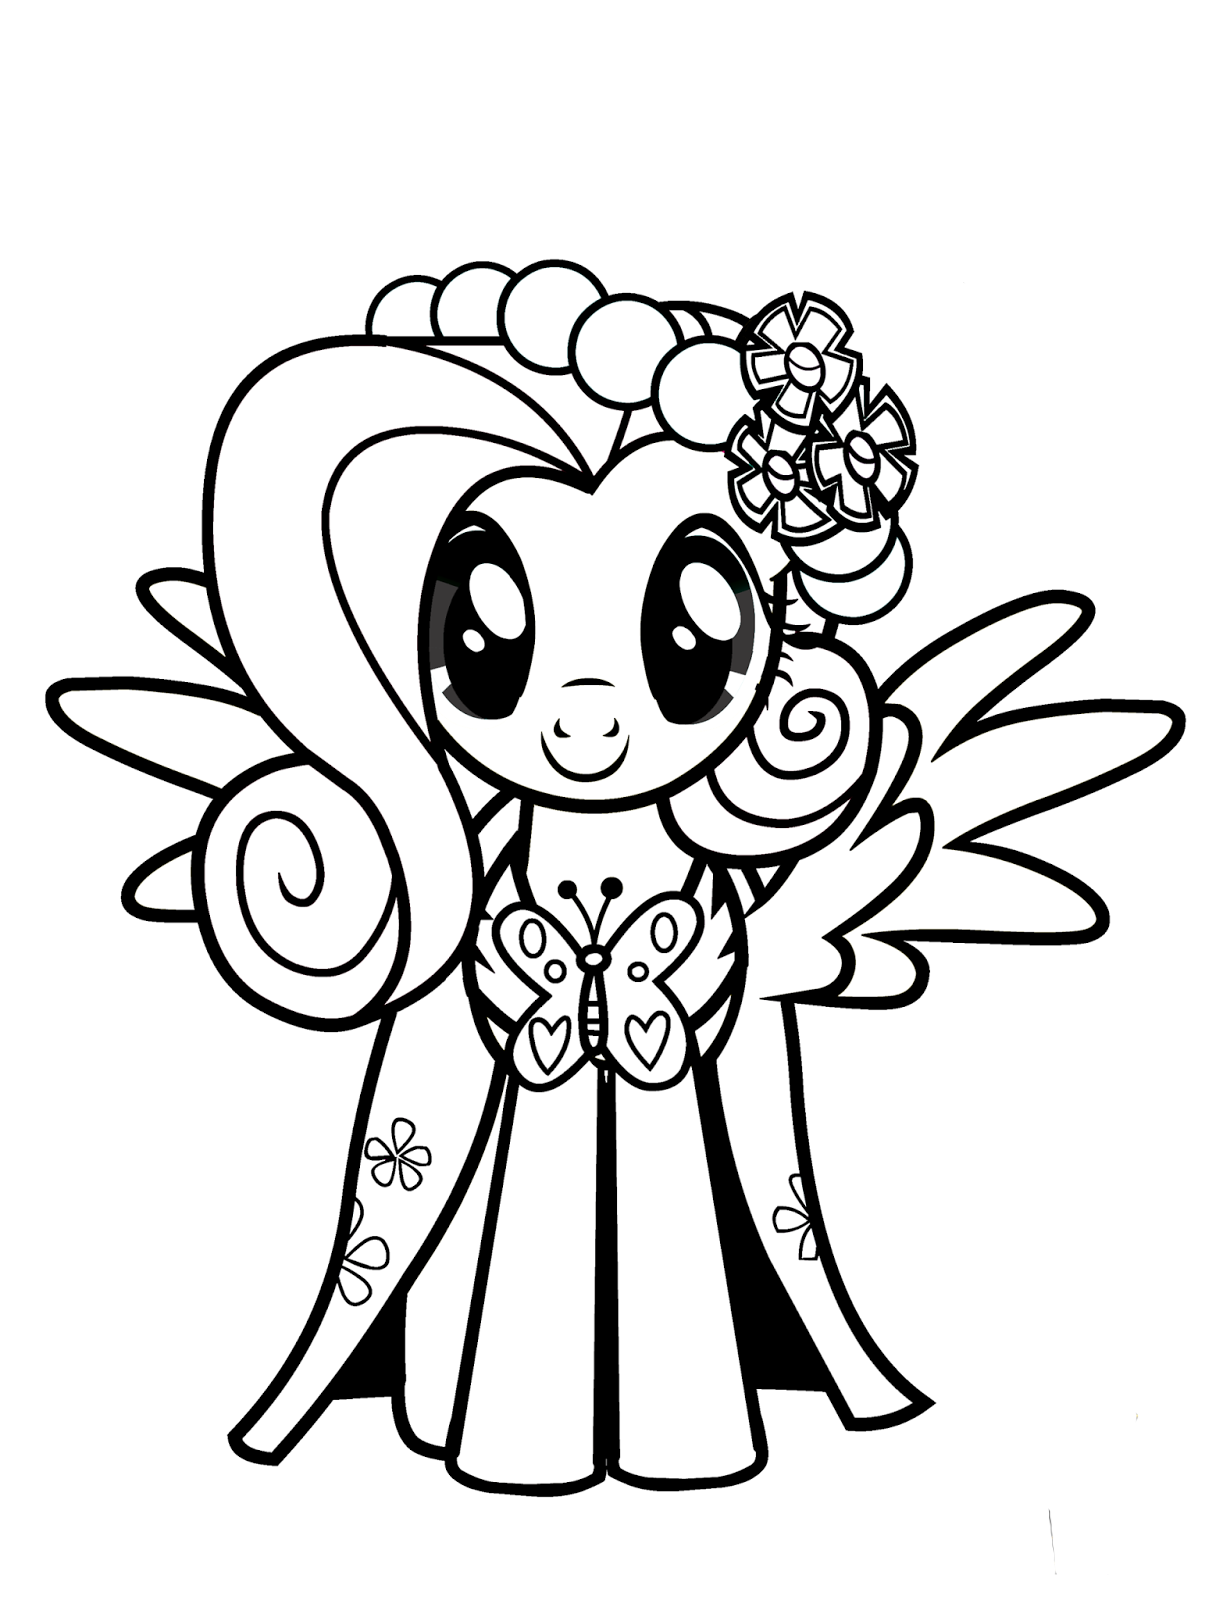 my little pony coloring sheets my little pony the movie coloring pages to download and pony little sheets coloring my